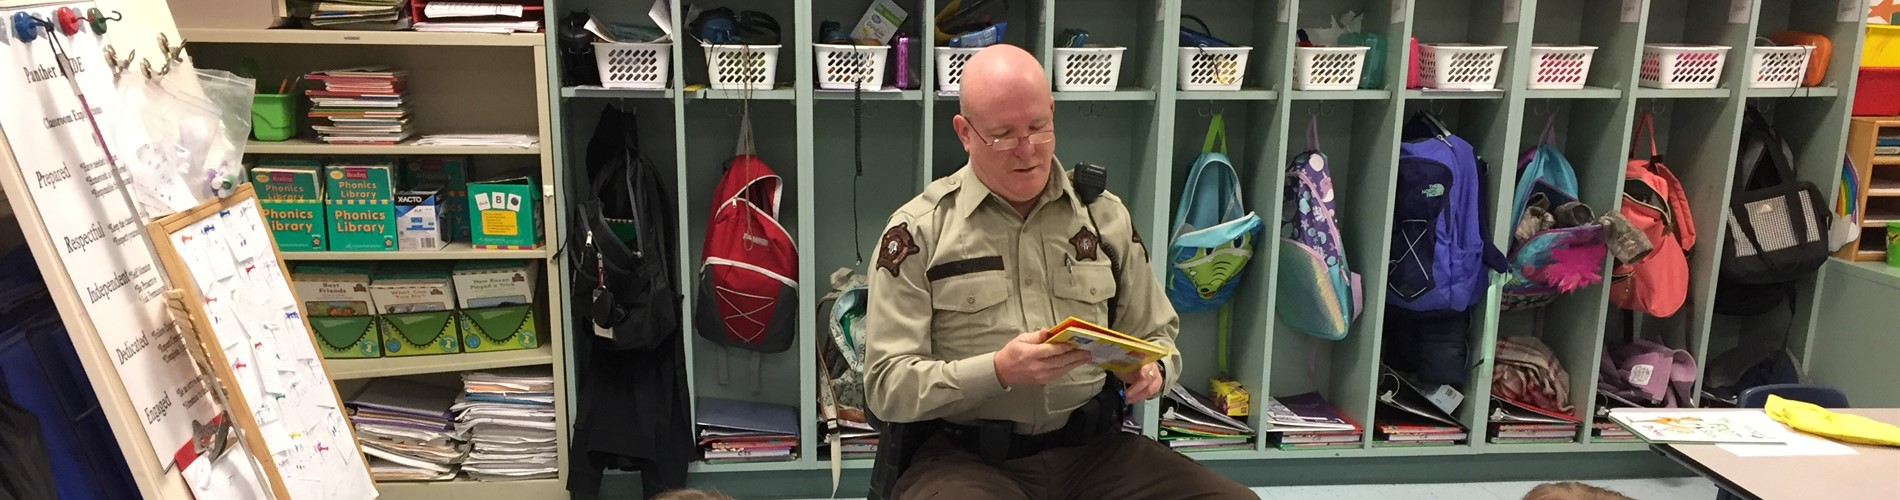 Deputy Blevins reads to a first grade classroom.